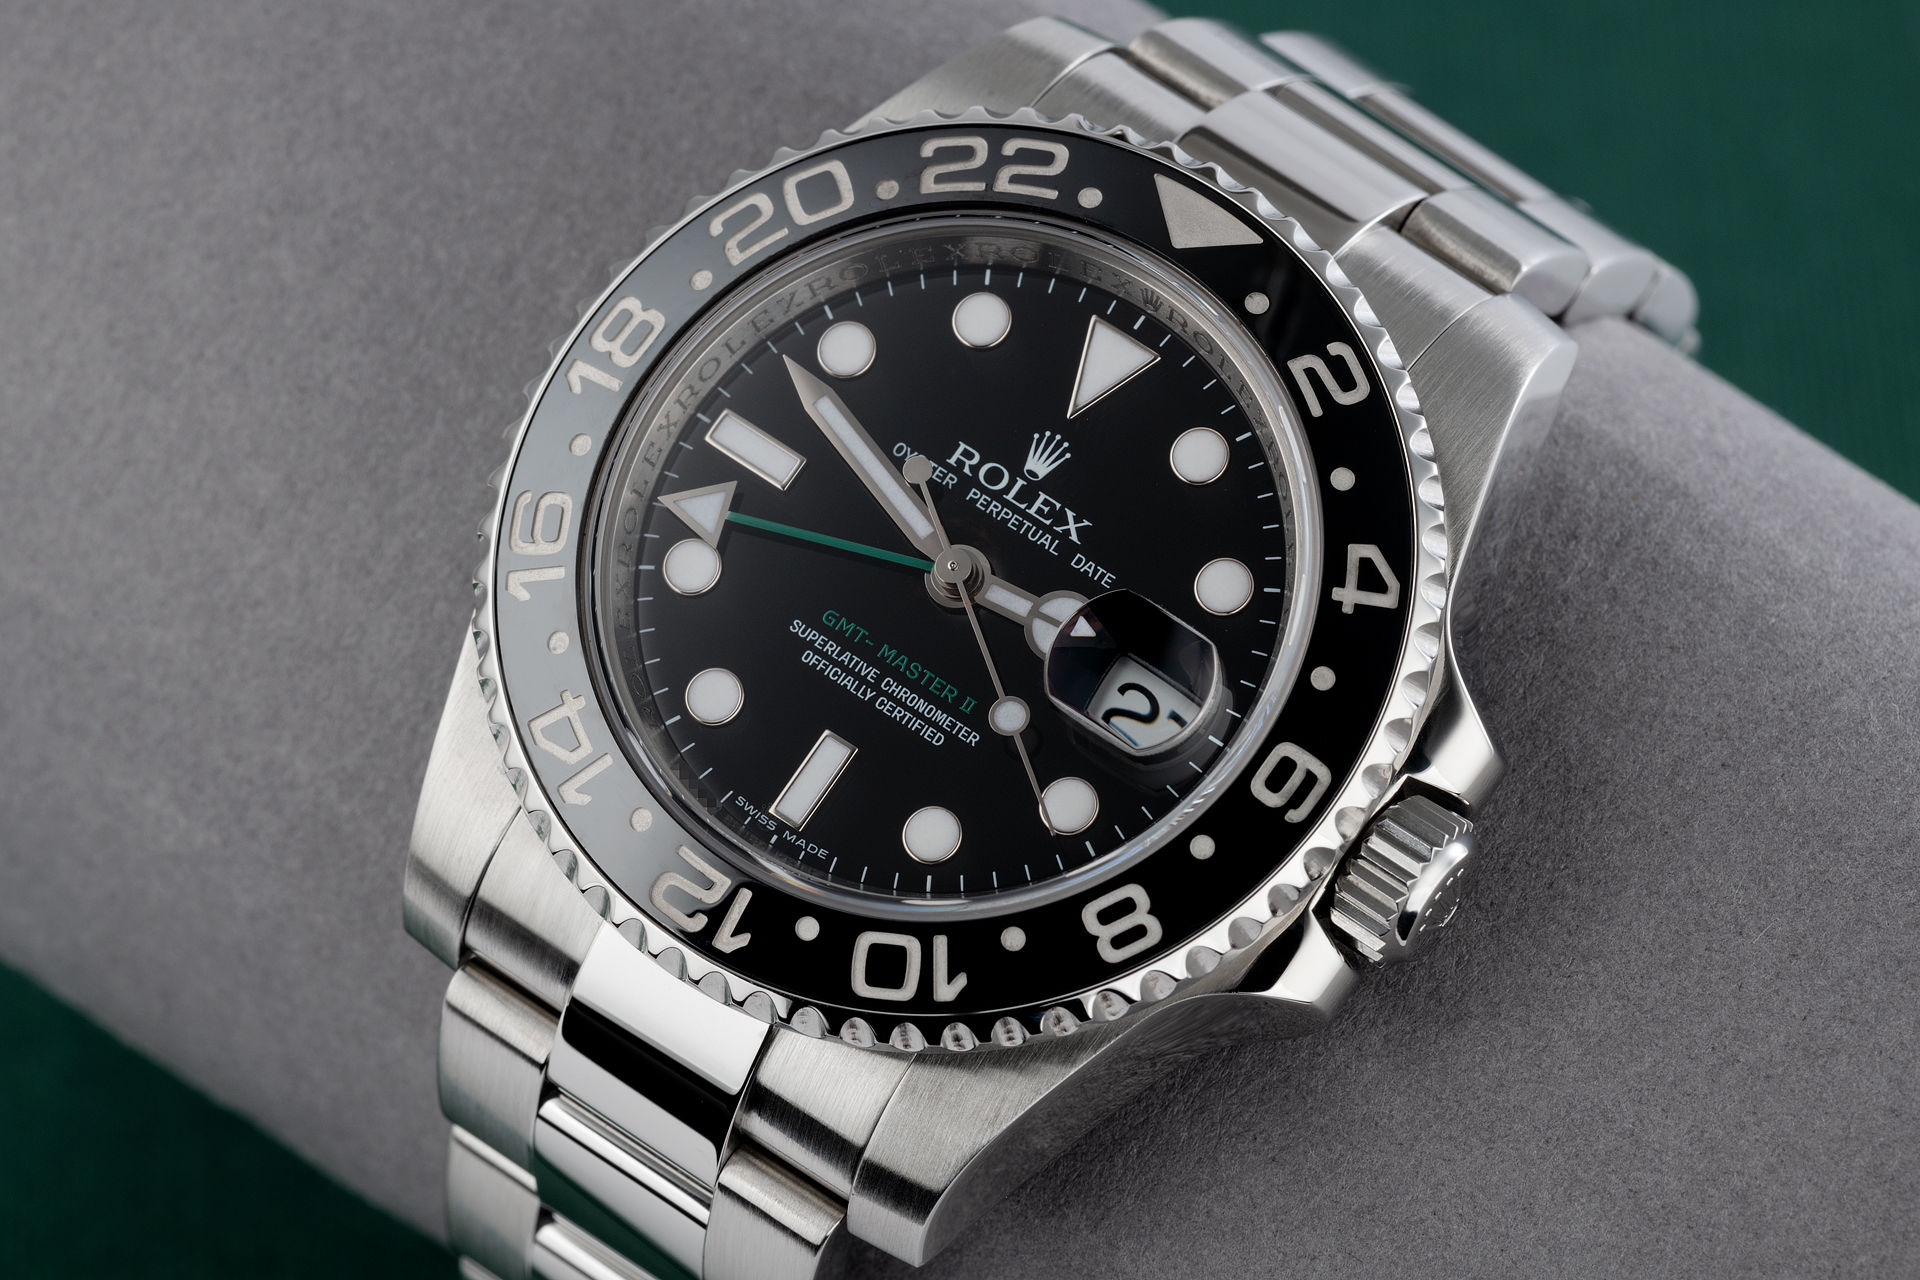 ref 116710LN | 'Ful Set' Discontinued Model | Rolex GMT-Master II